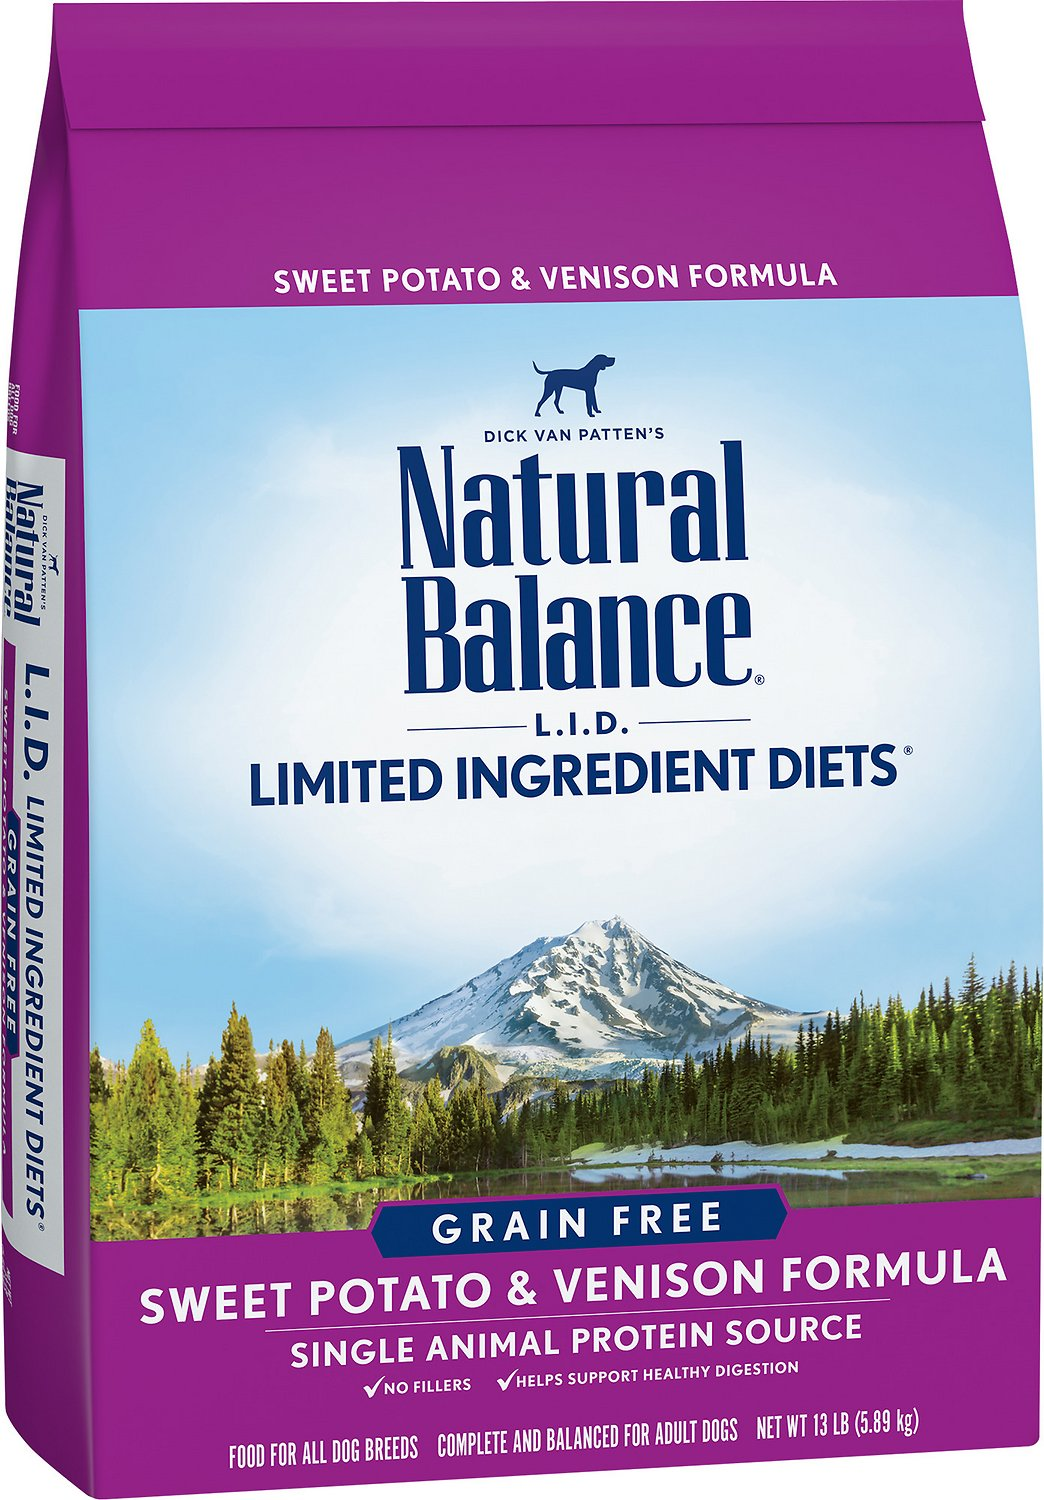 Natural Balance L I D Limited Ingredient Diets Grain Free